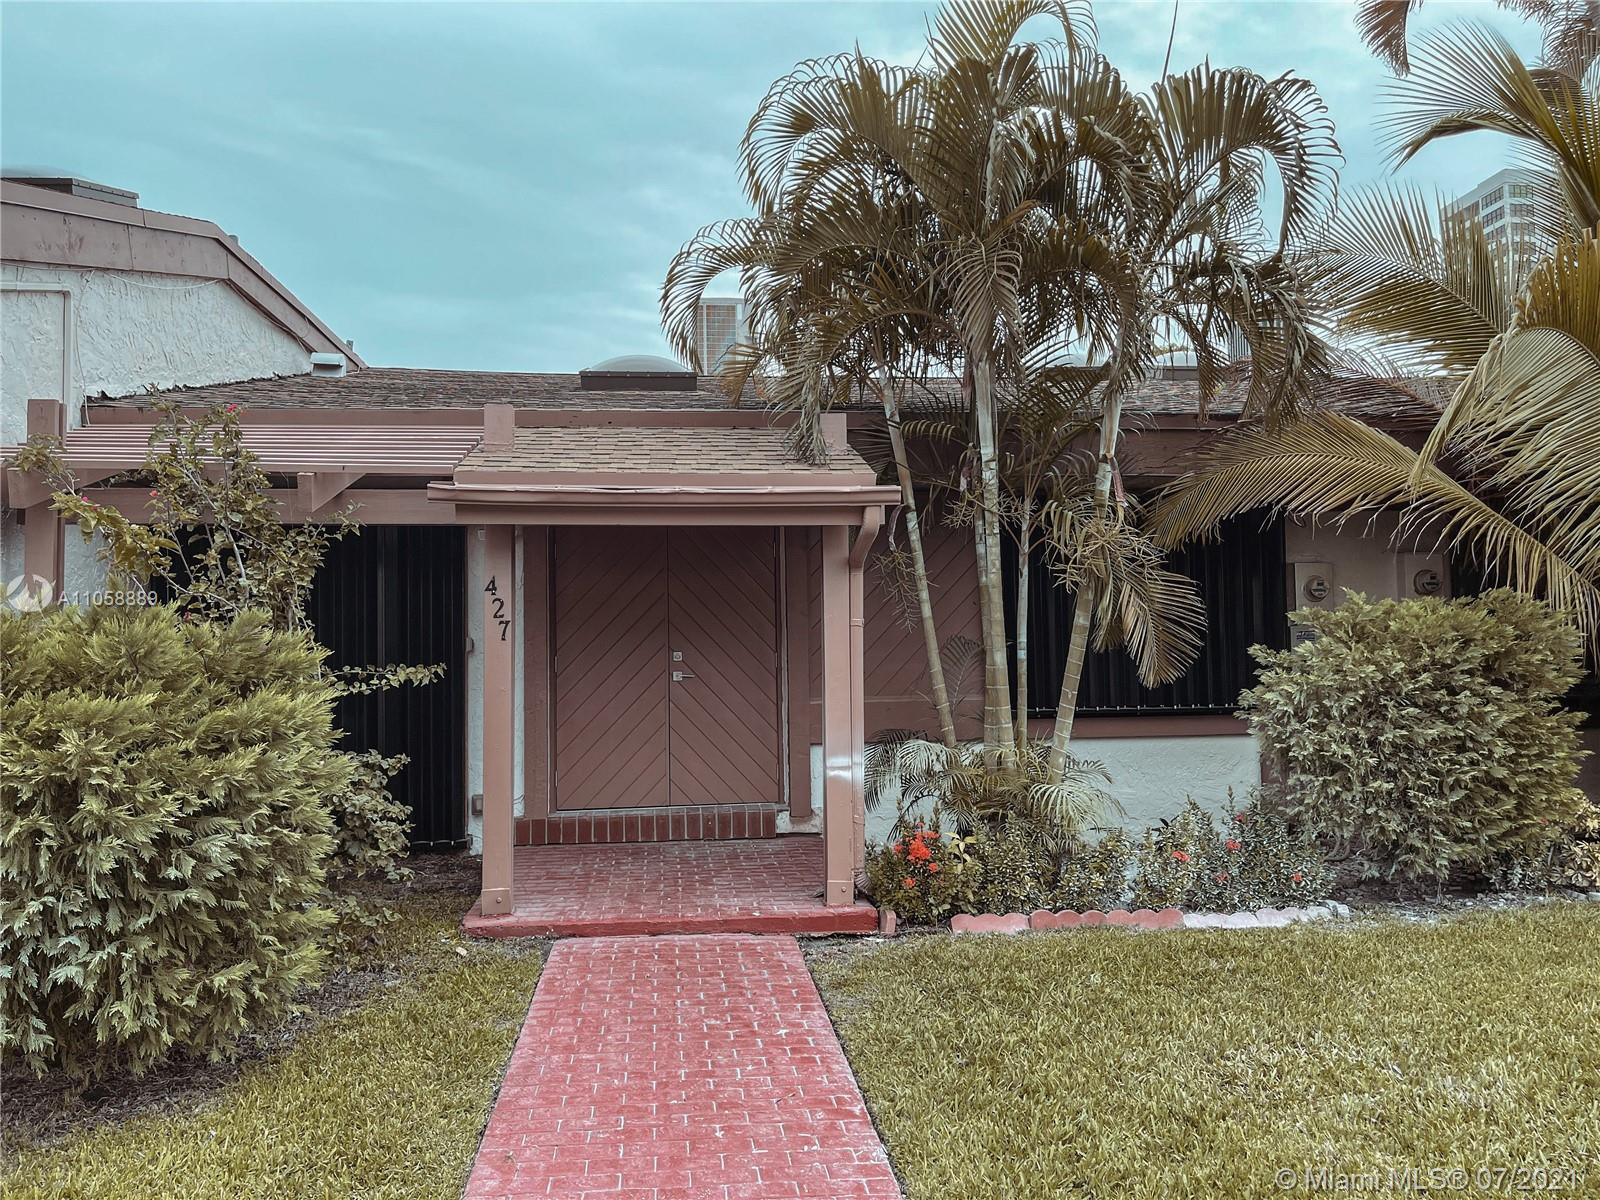 GORGEOUS 3BED/3BATH FULLY REMODELED TOWNHOUSE AT THE GREAT LOCATION! New entrance door and front wo